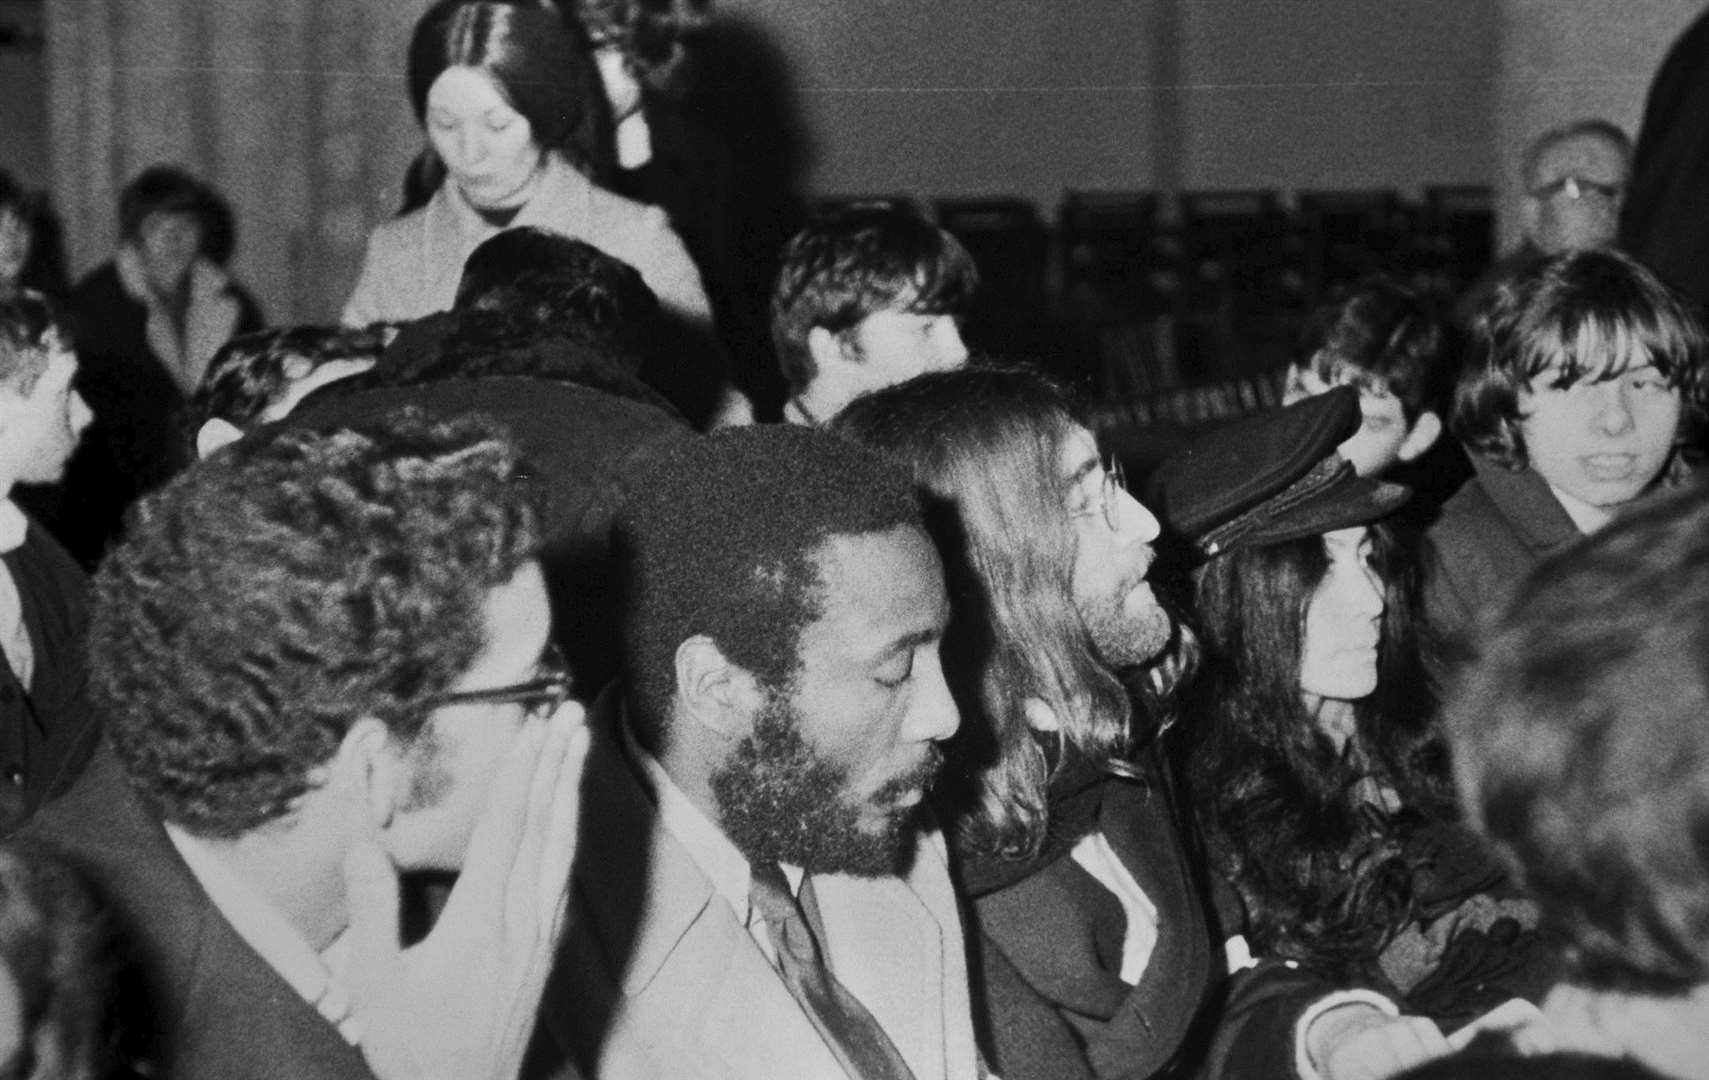 John Lennon and Yoko Ono at midnight mass in Rochester Cathedral in 1969. With them is the American comedian Dick Gregory